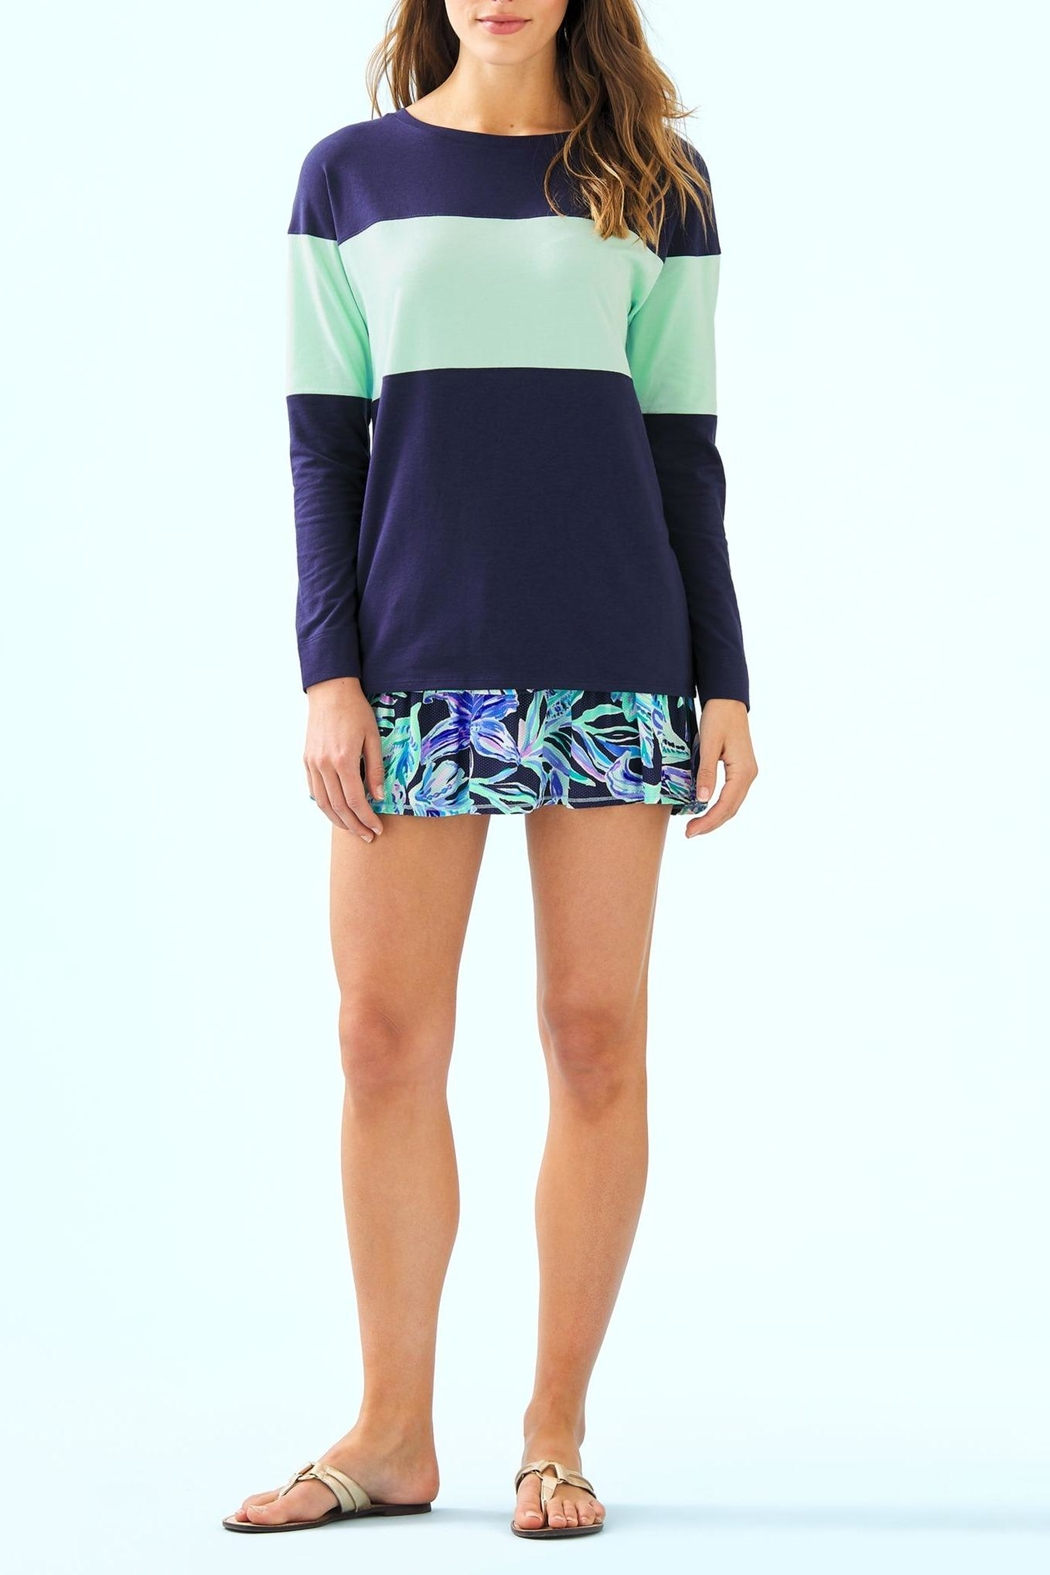 Lilly Pulitzer Luxletic Althea Active-Skort - Back Cropped Image